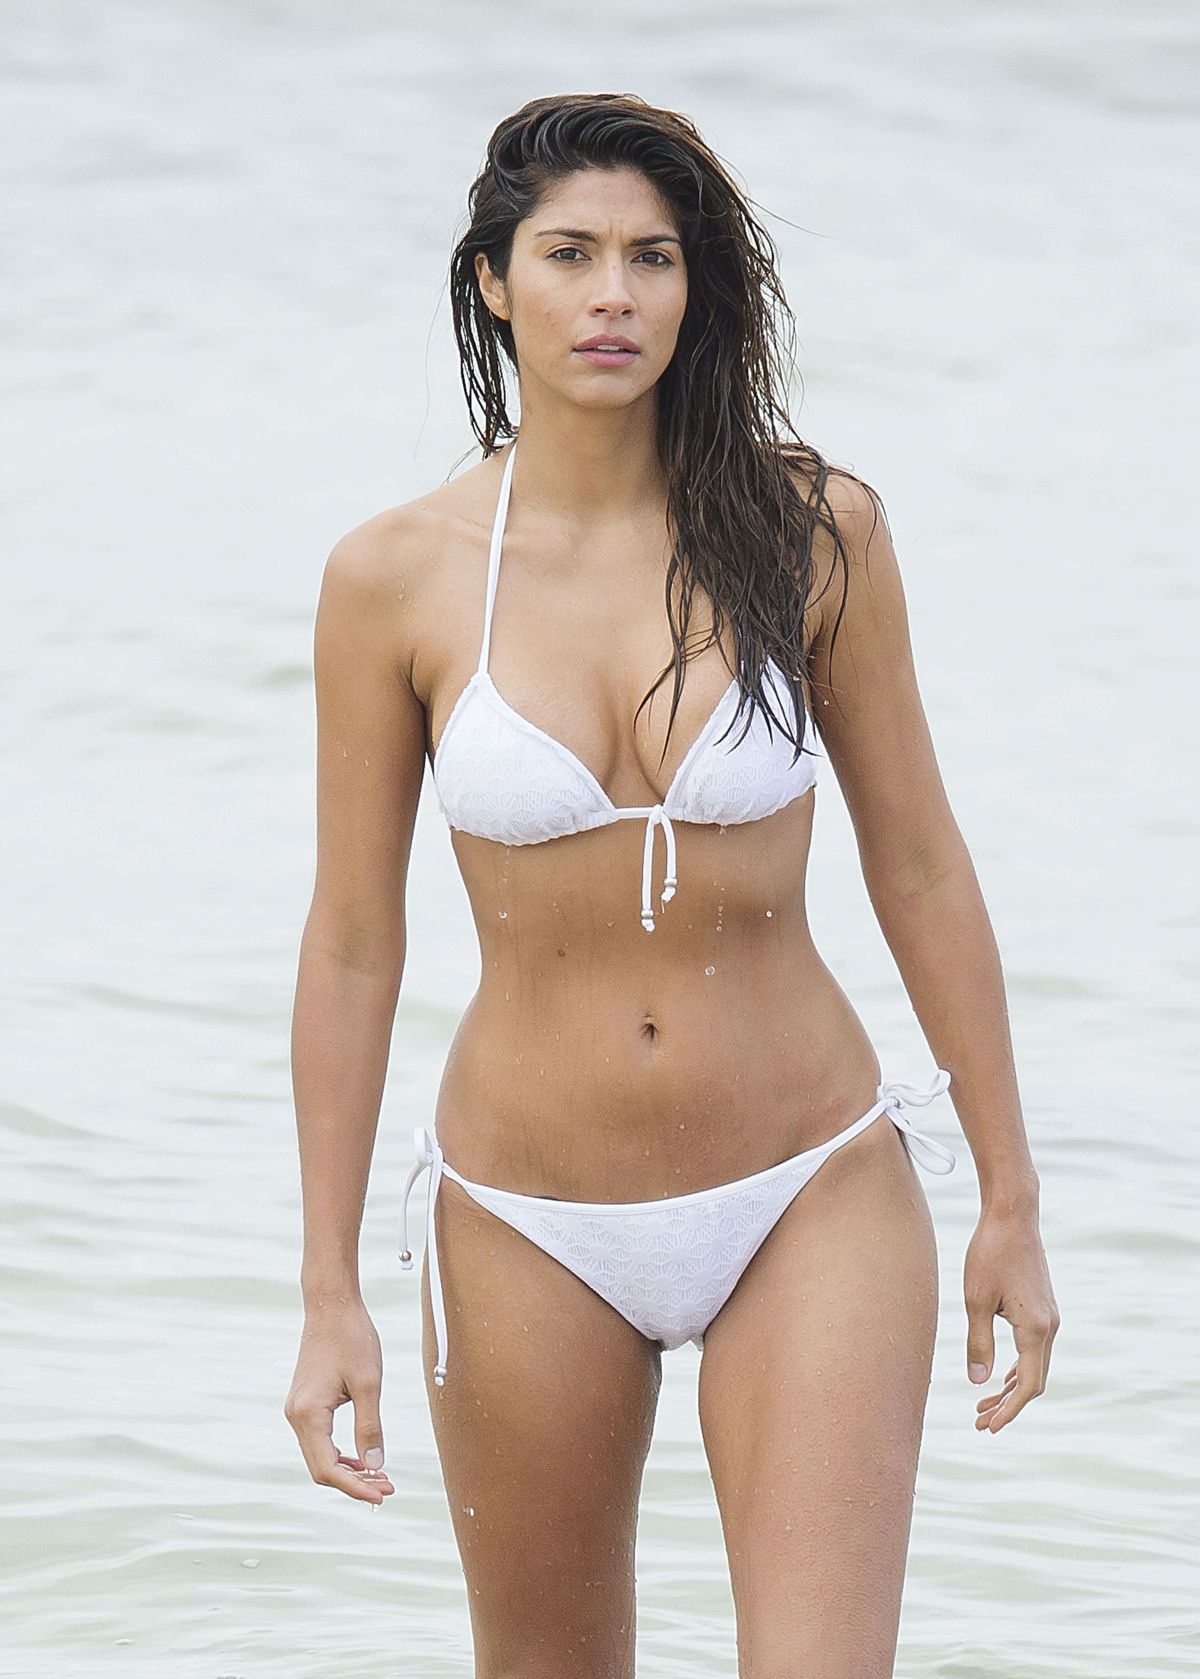 Pictures Pia Miller nude photos 2019